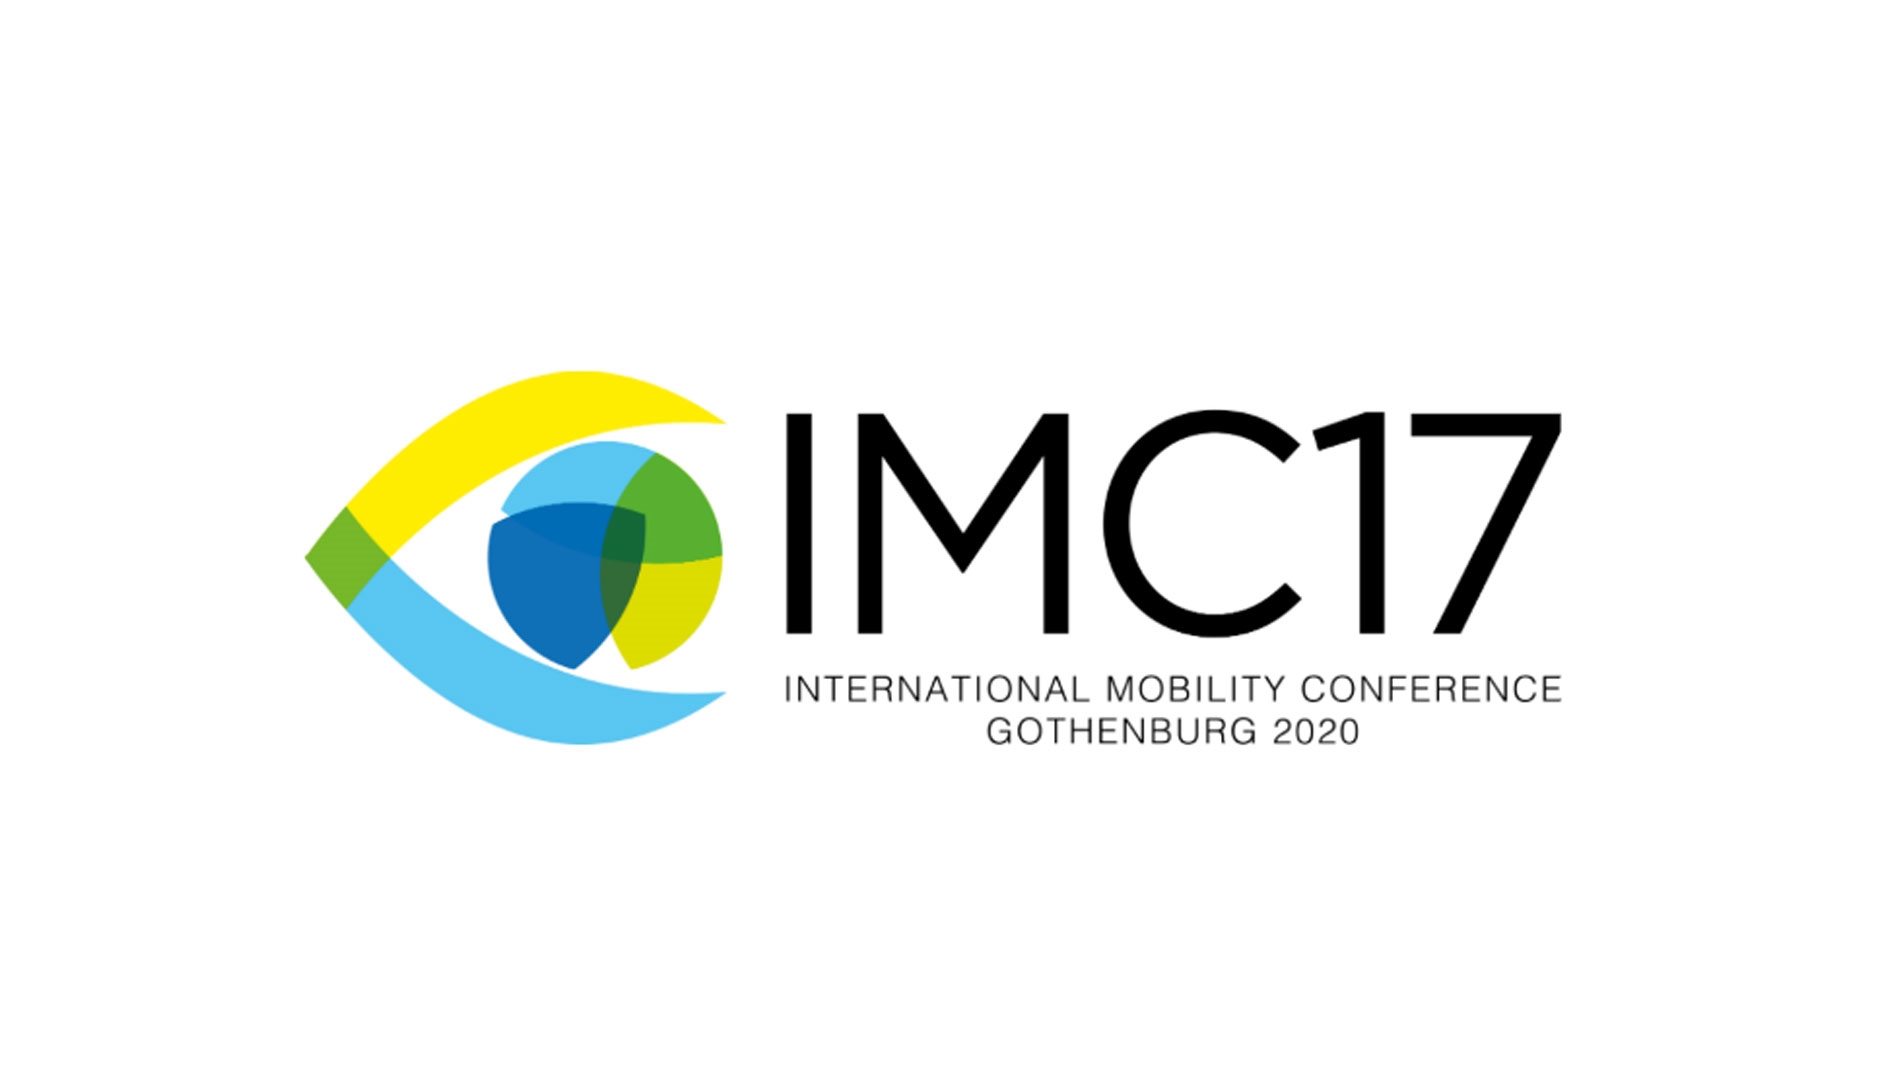 International Mobility Conference (IMC)